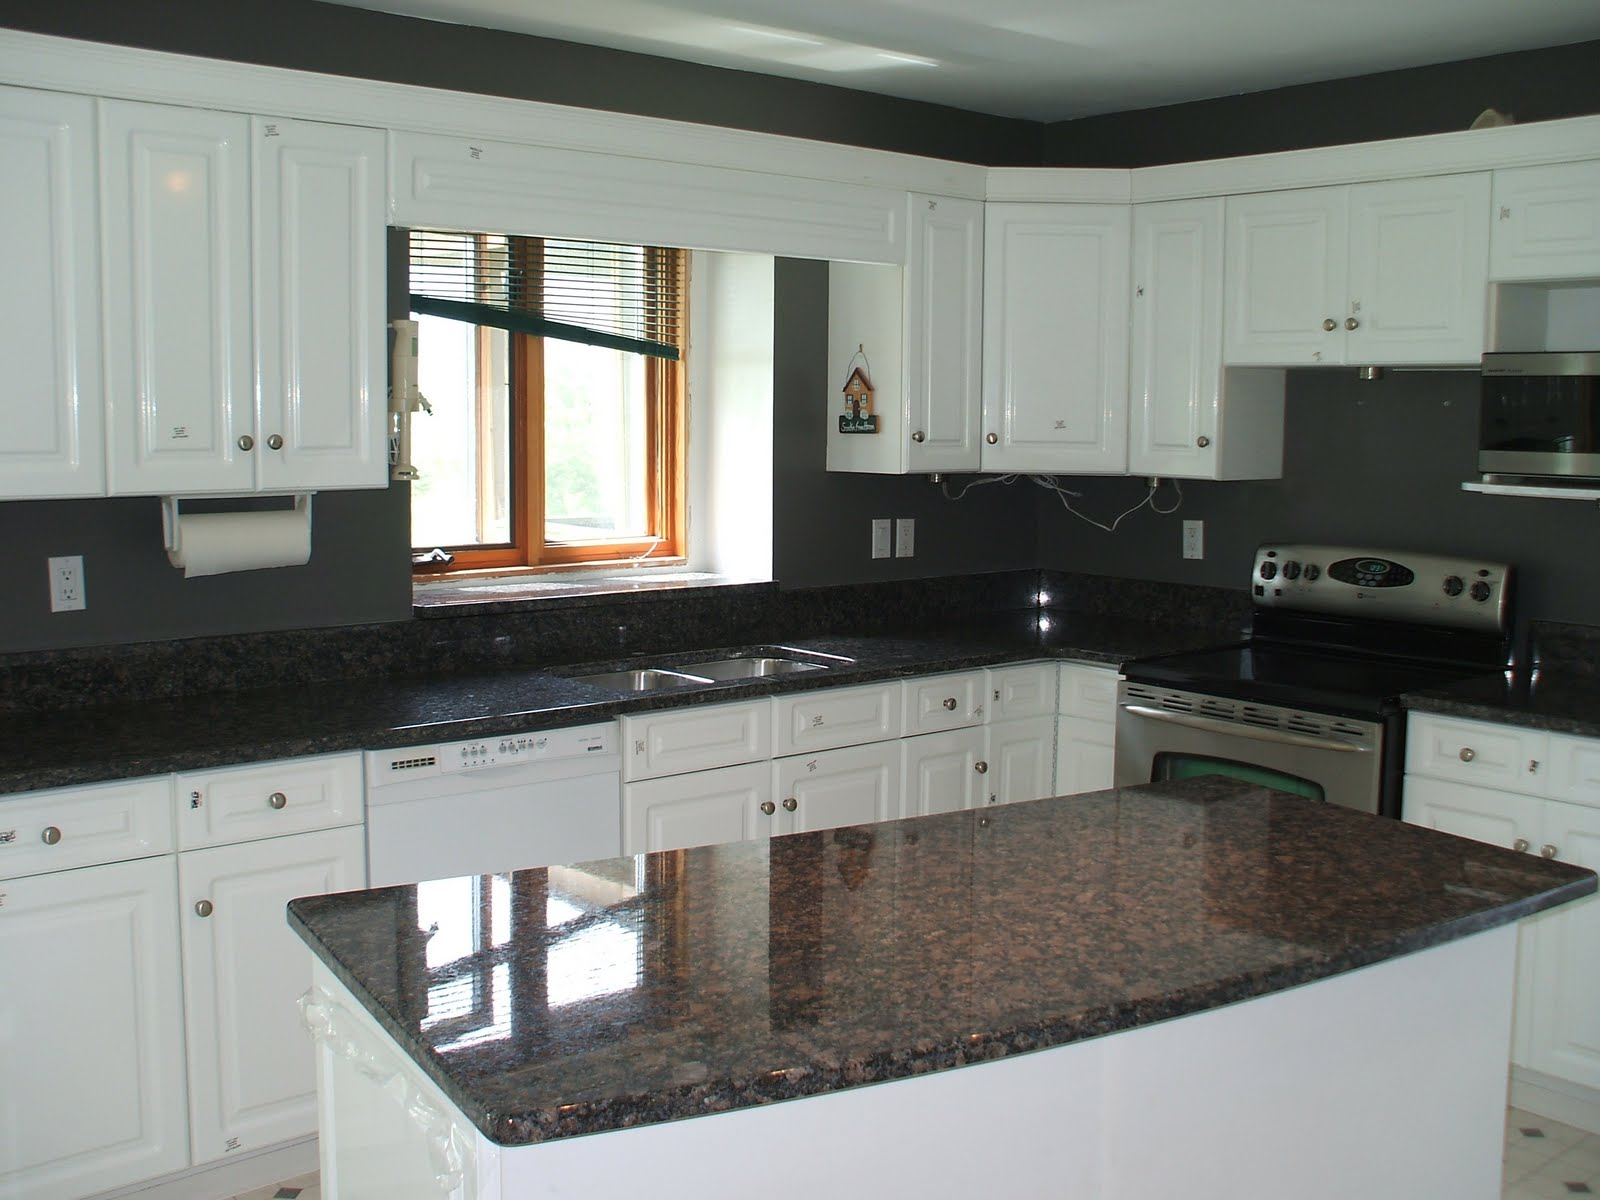 Image of Kitchen with Granite Window Ledge